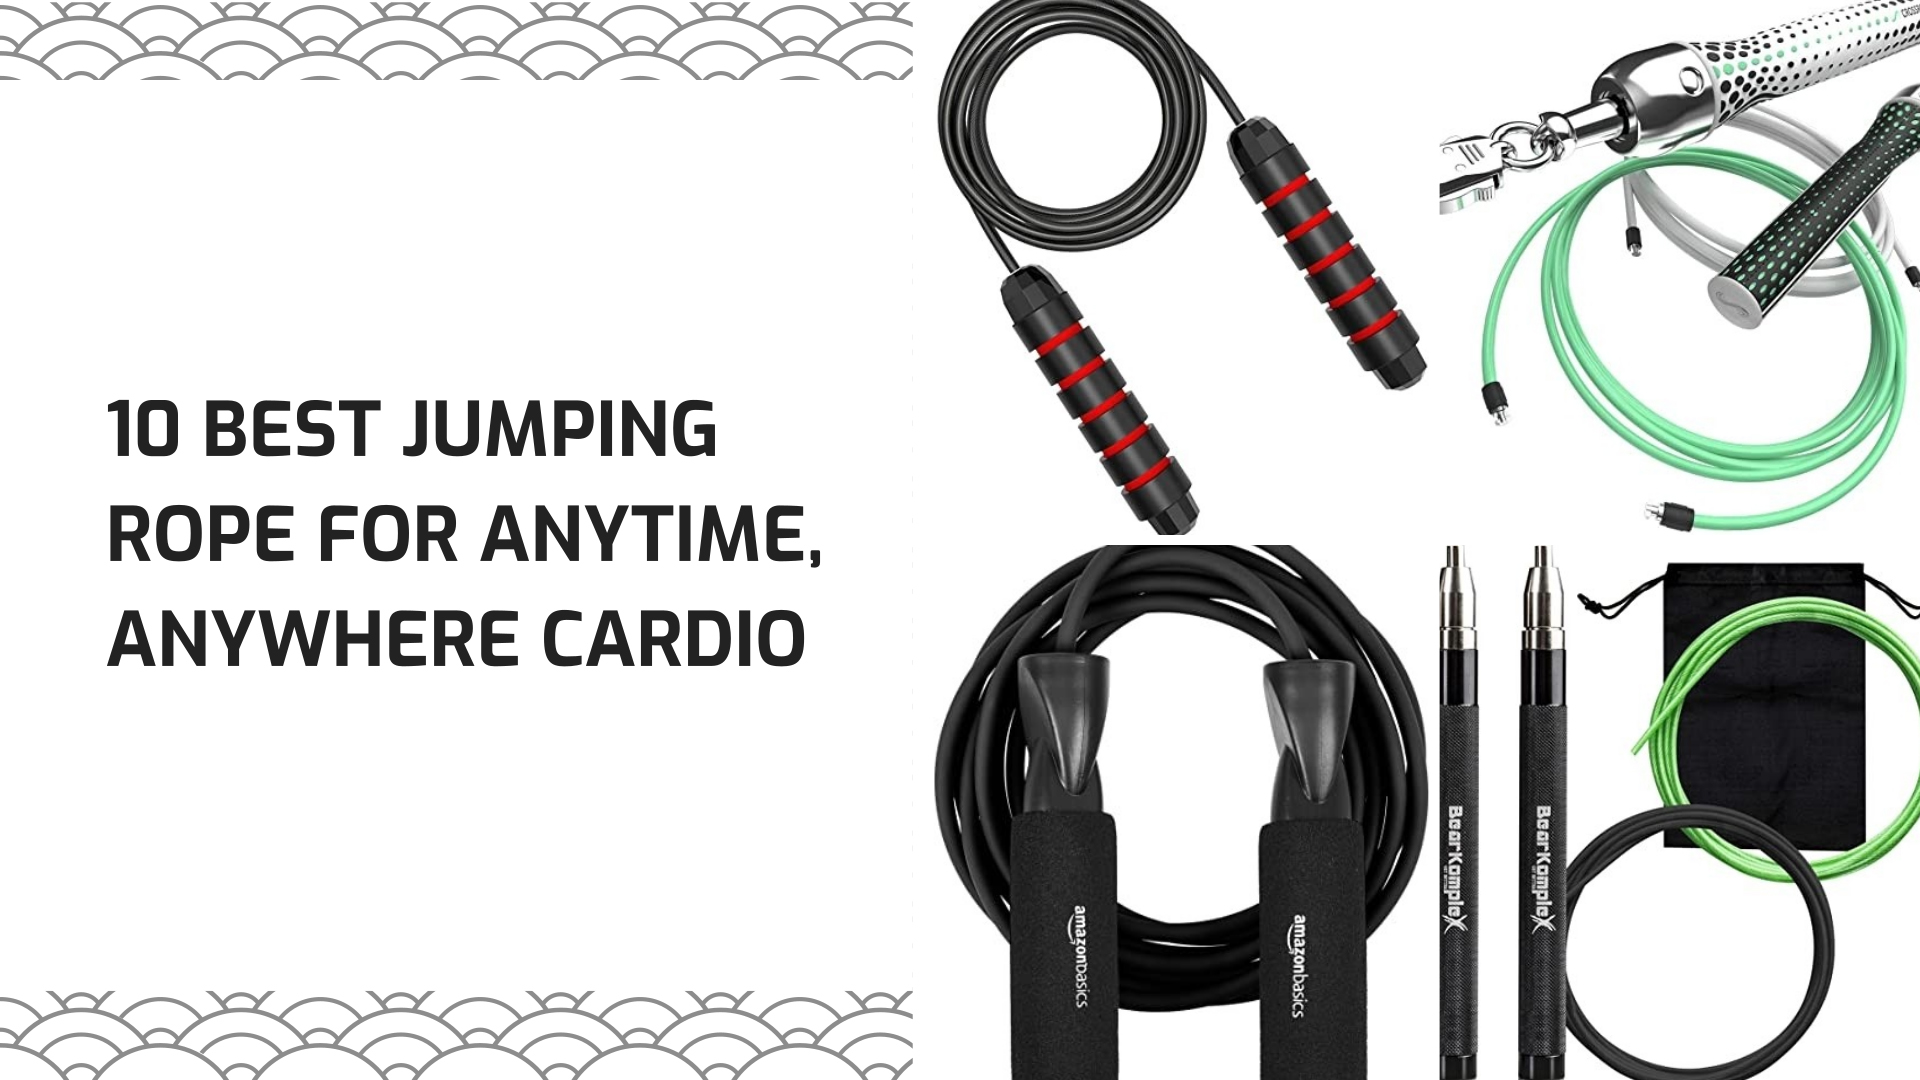 10 Best Jumping Rope For Anytime Anywhere Cardio